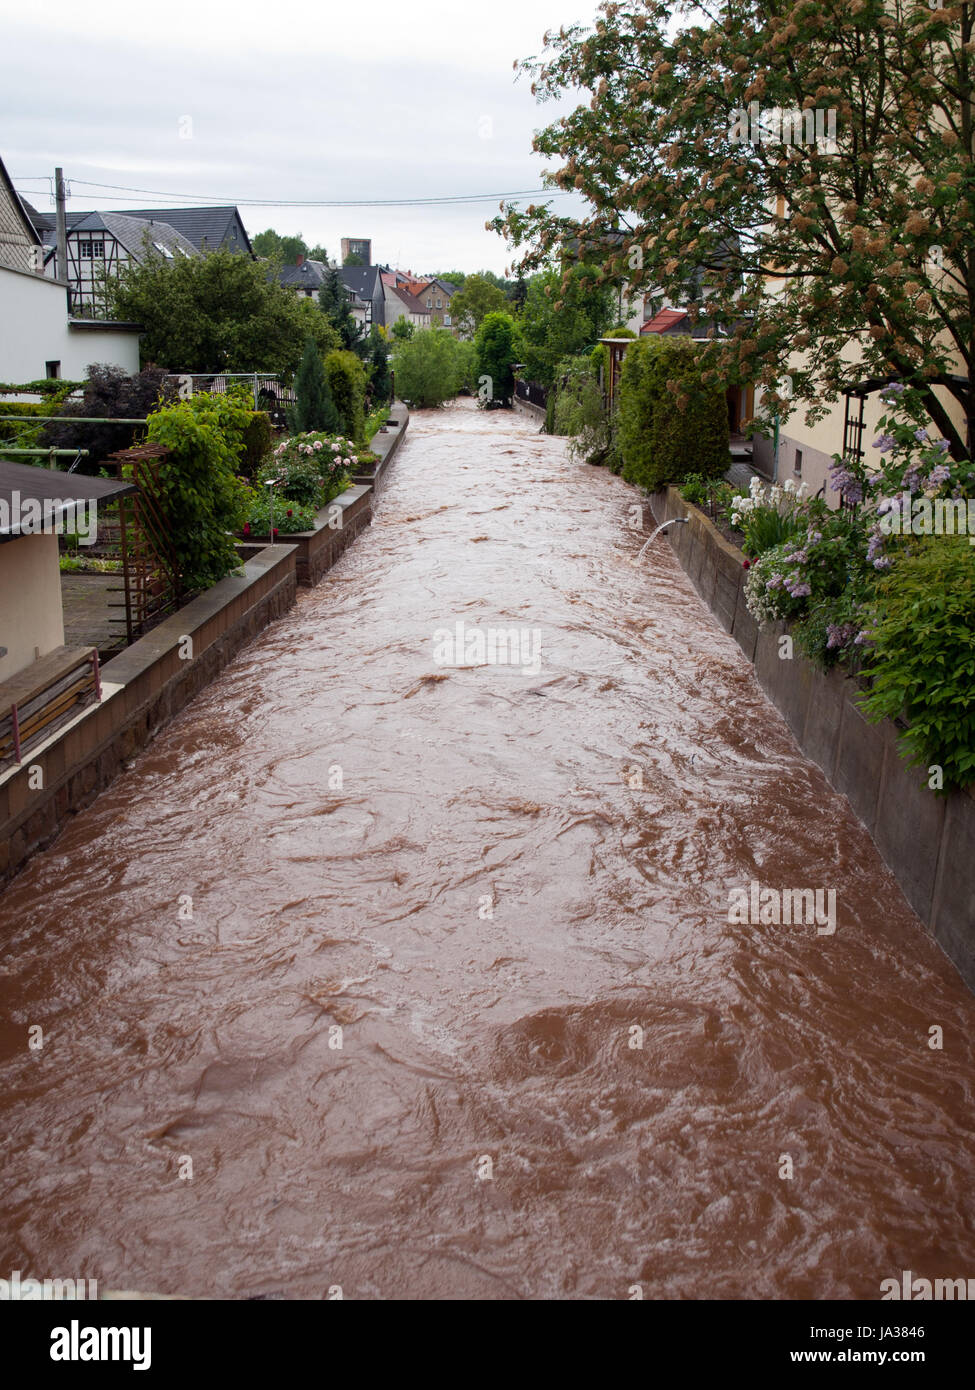 stream, flood, catastrophe, climate, century, climate change, river, water, - Stock Image